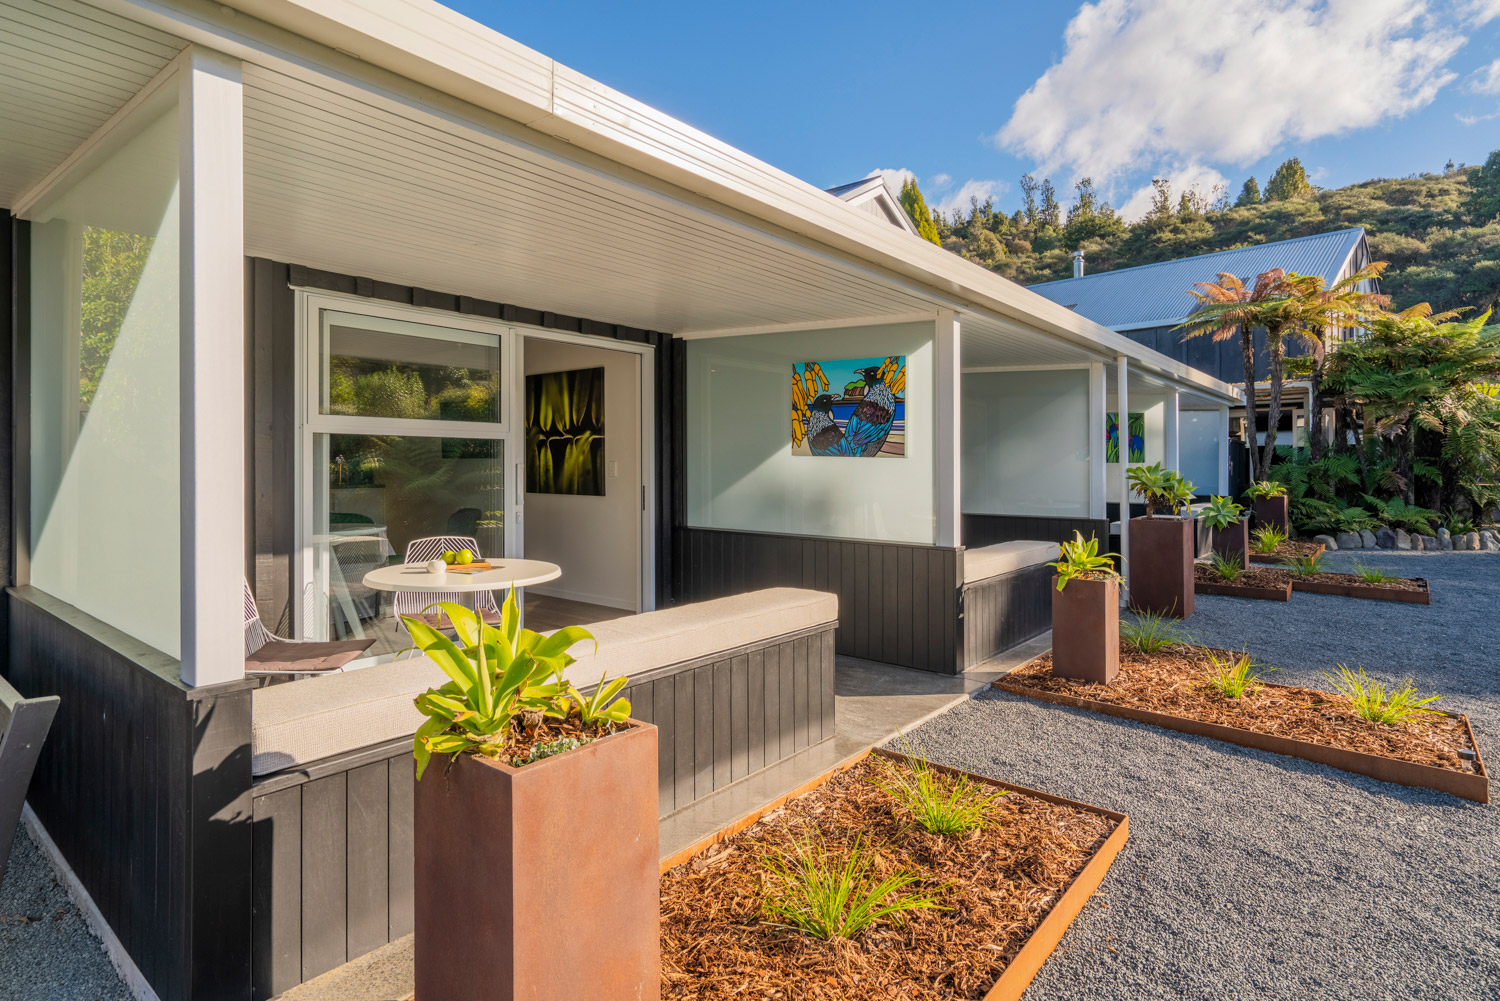 New Rooms at Wairua Lodge 2019